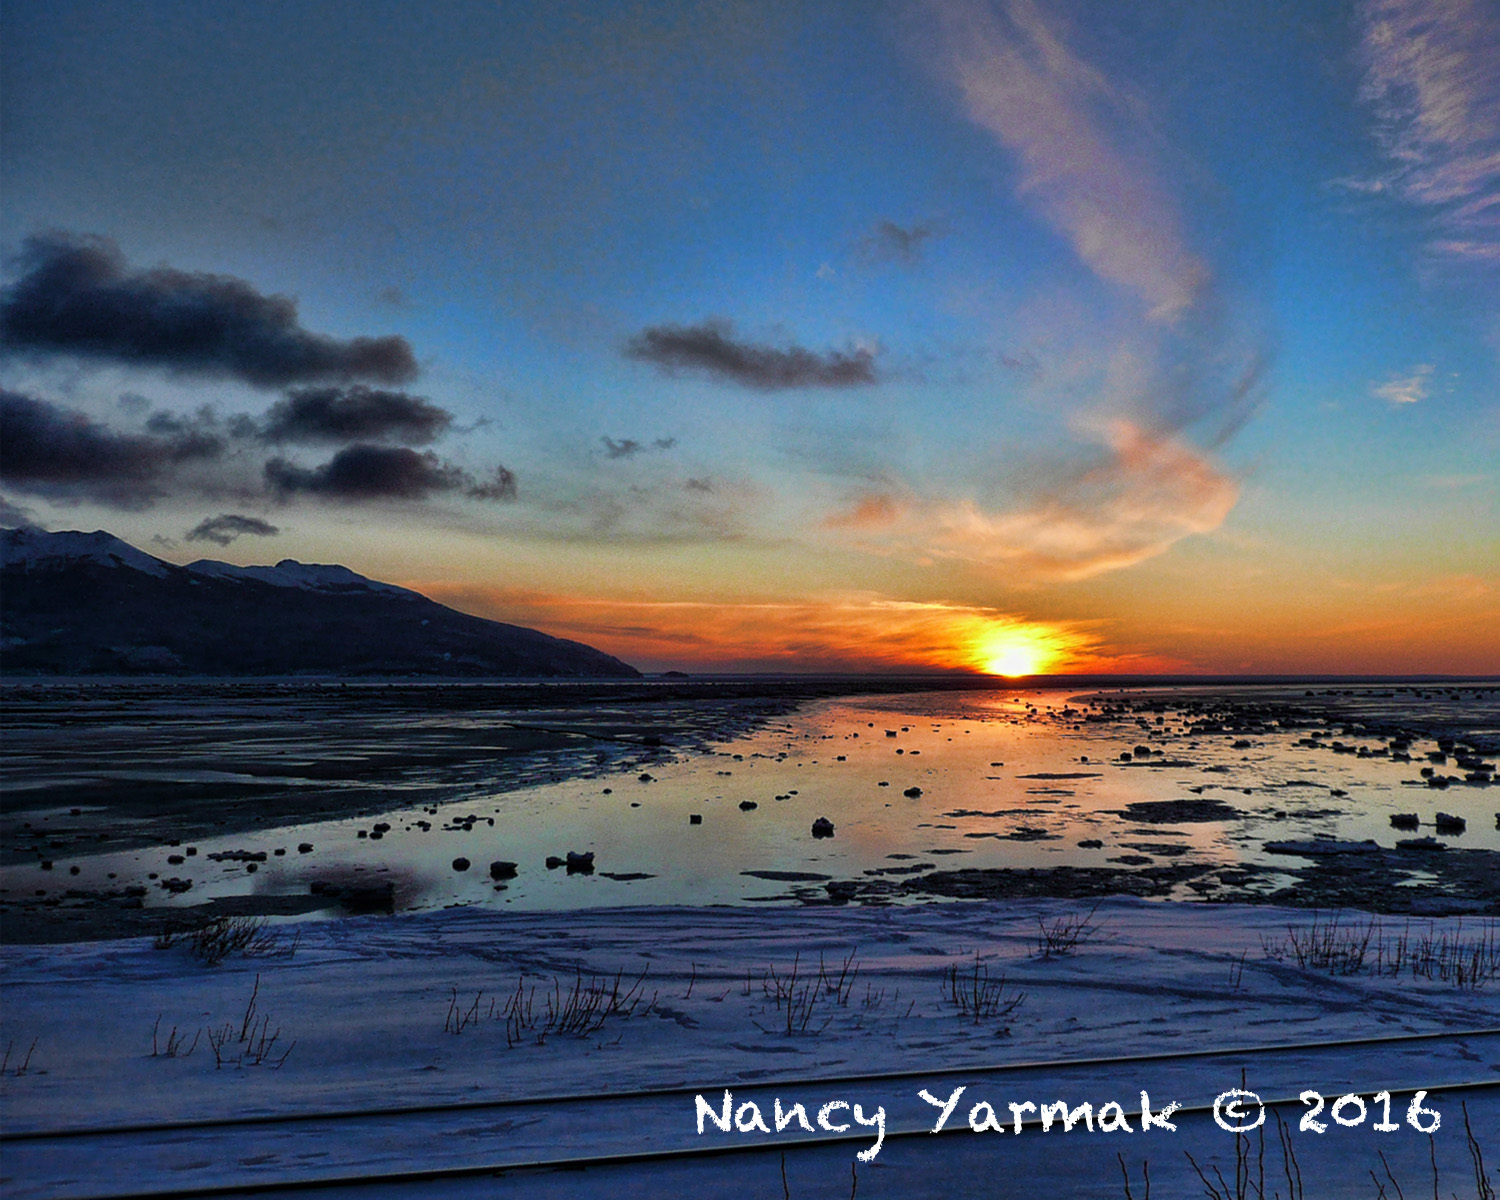 Turnagain Arm Sunset-Nancy Yarmak